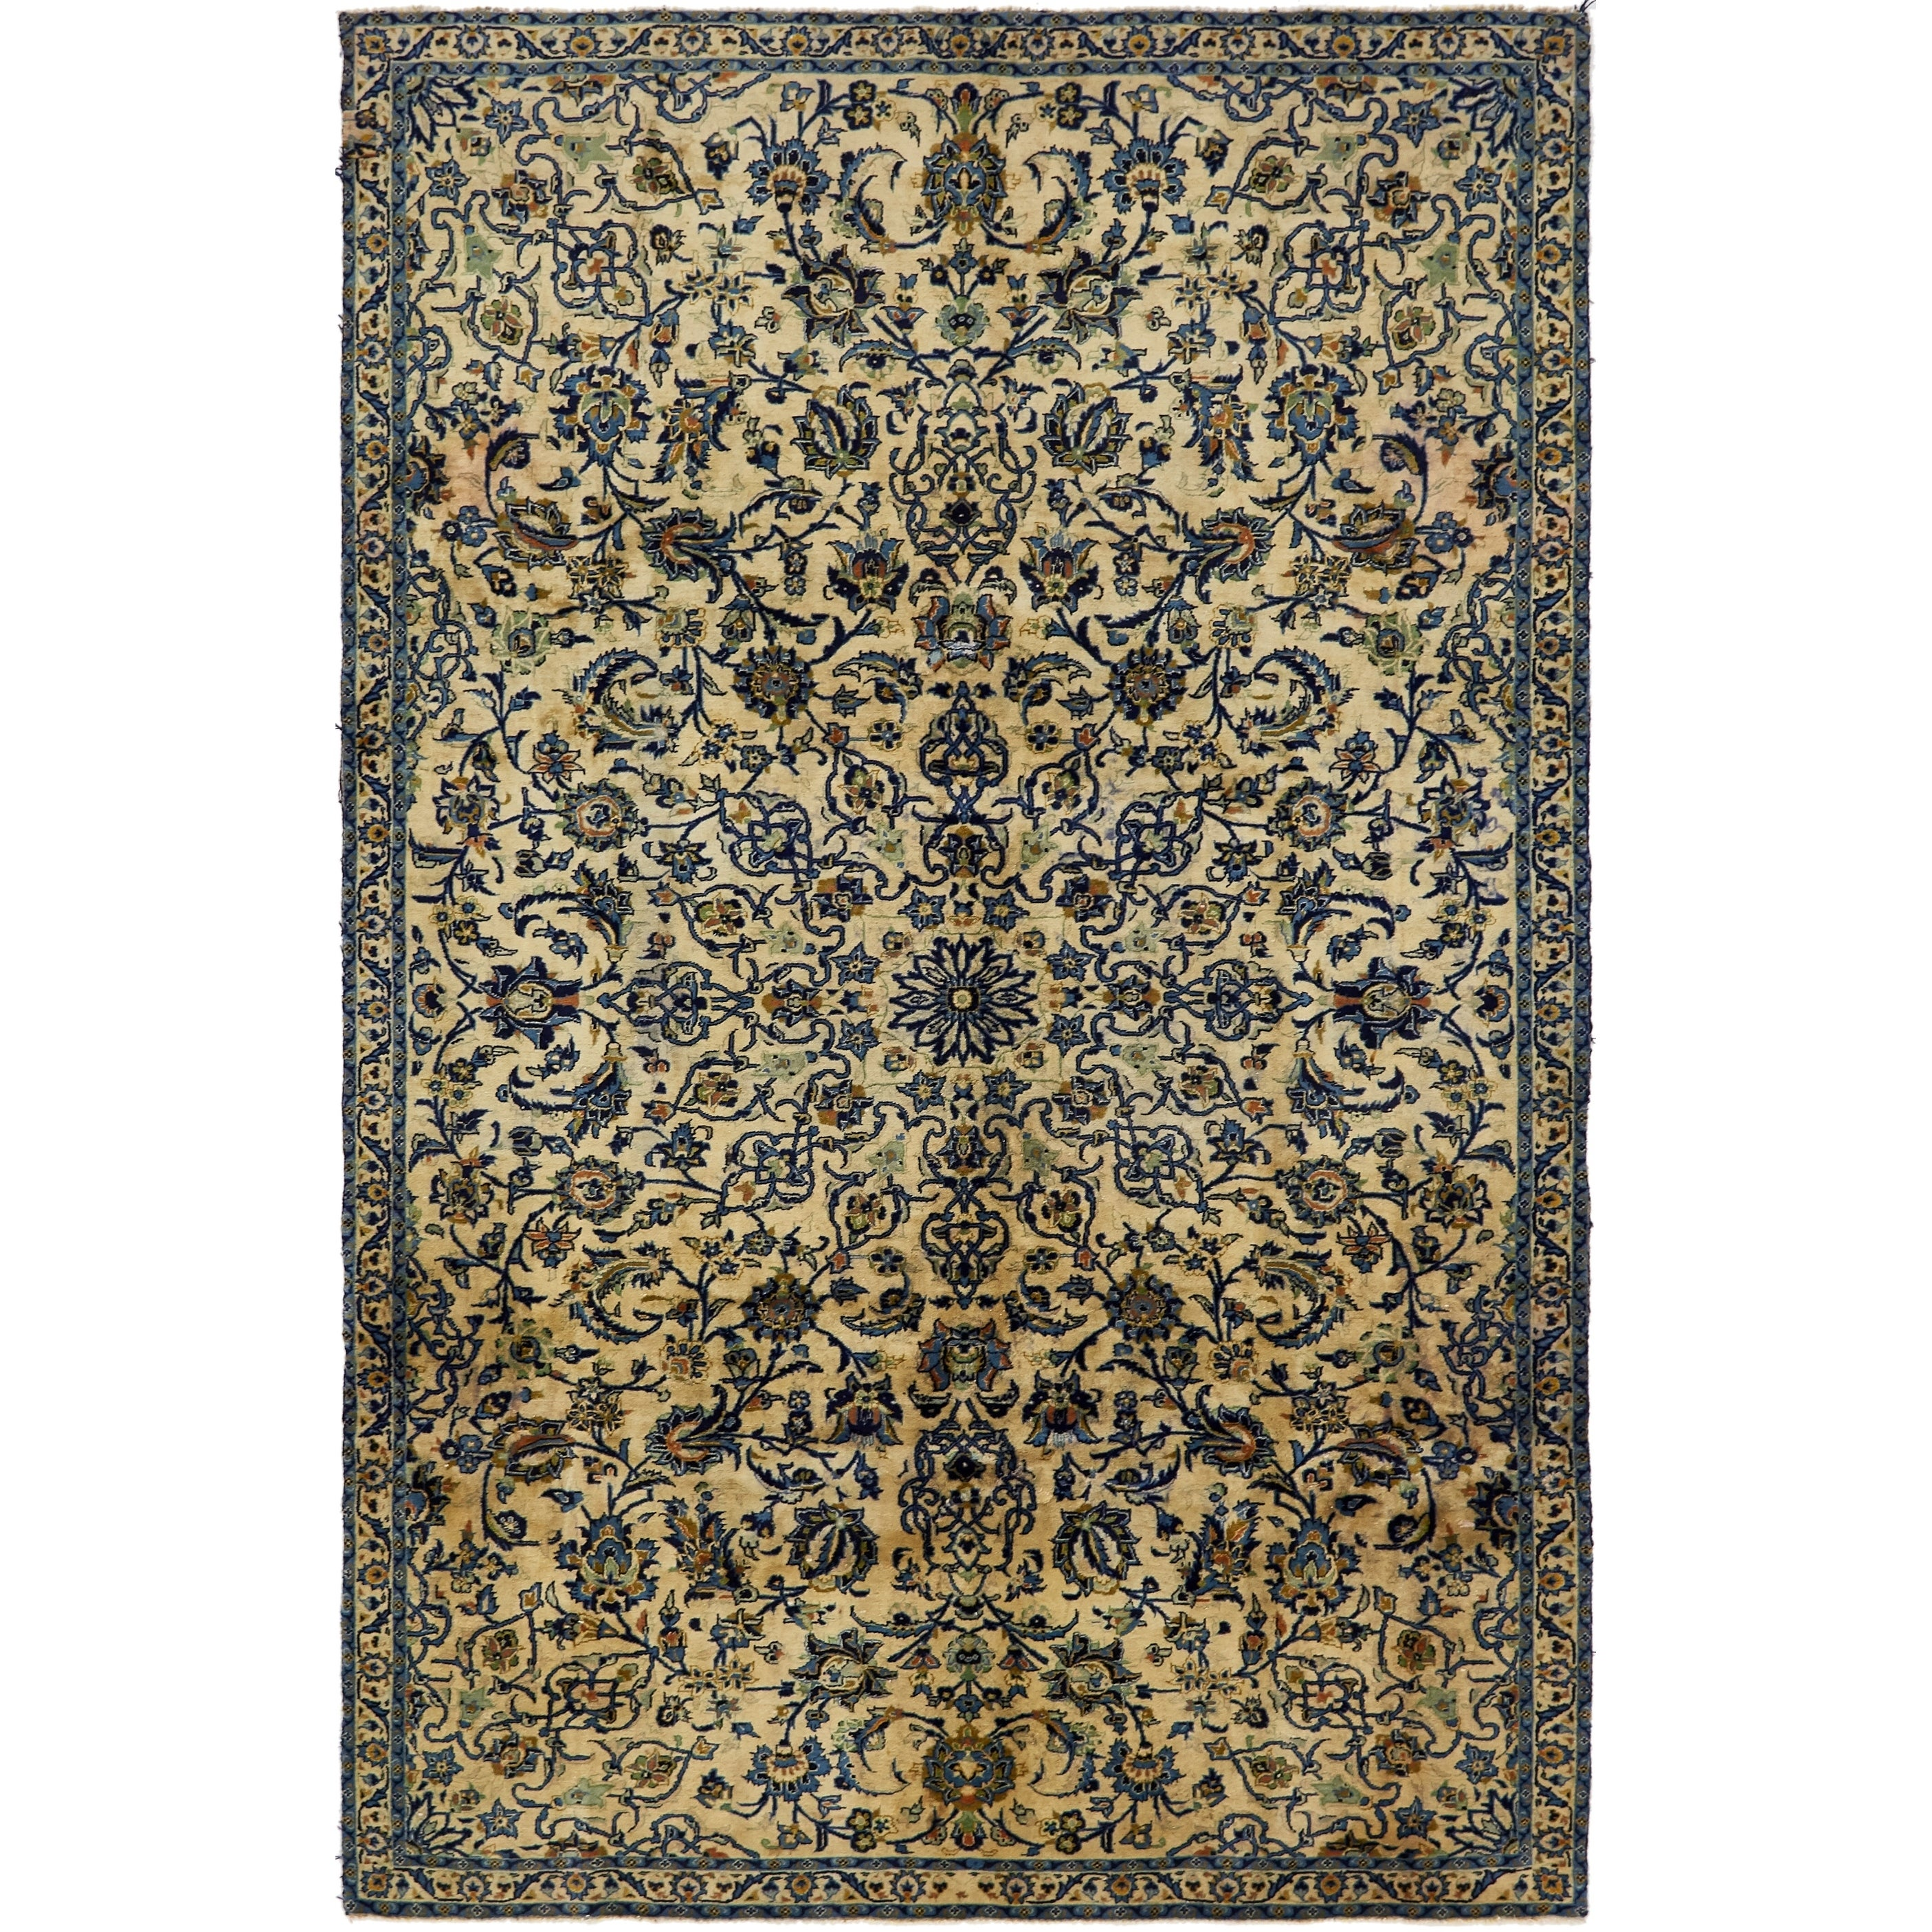 Hand Knotted Kashan Antique Wool Area Rug - 7 x 10 8 (Ivory - 7 x 10 8)